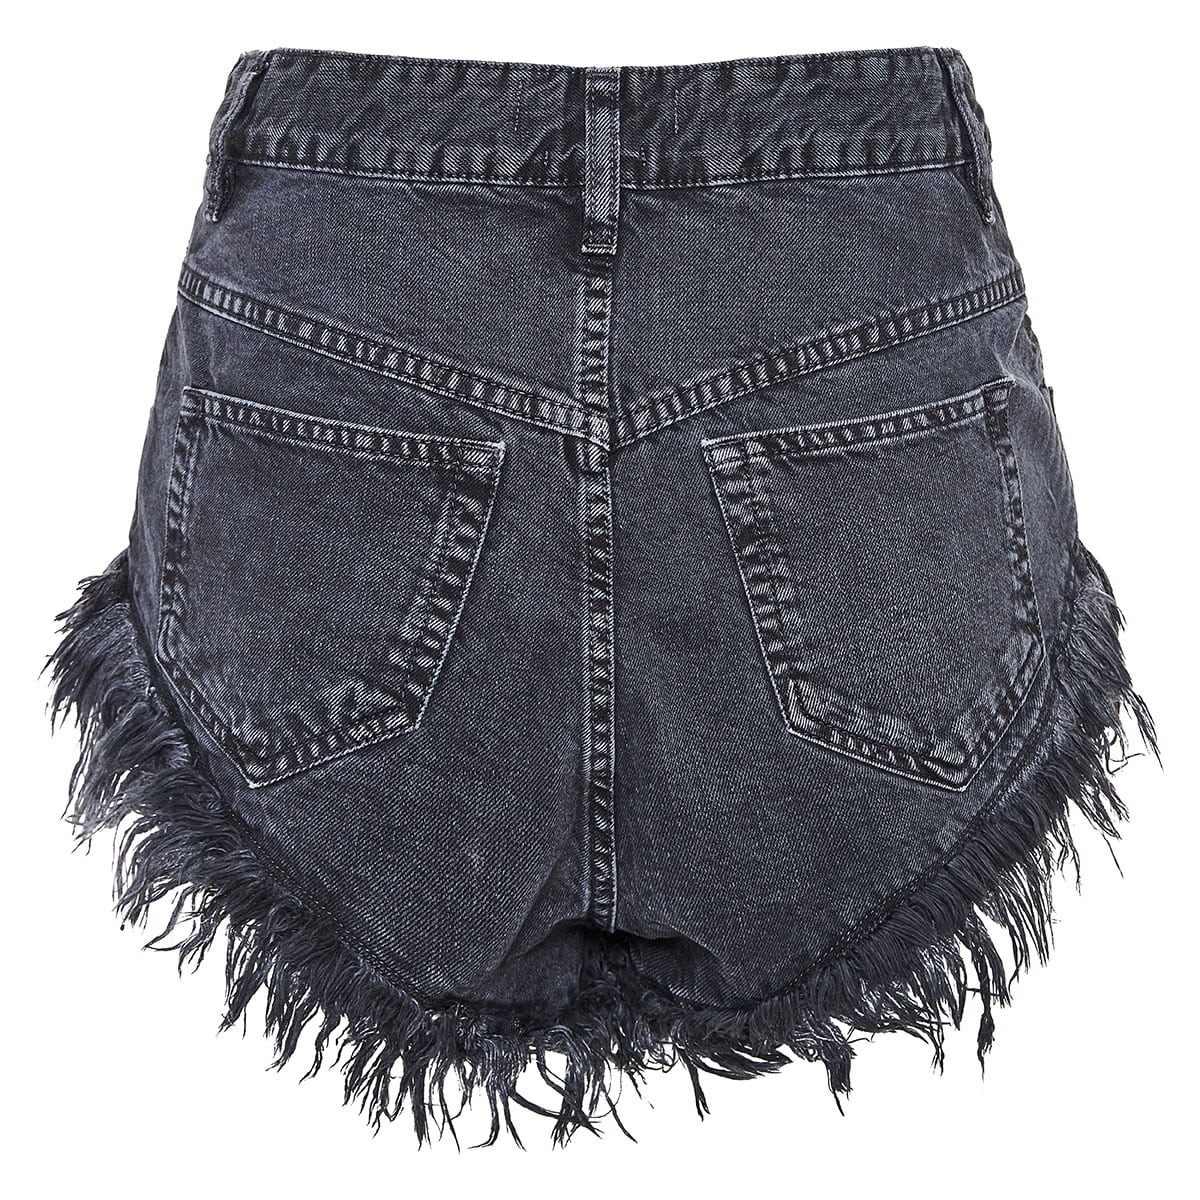 Eneida denim mini shorts